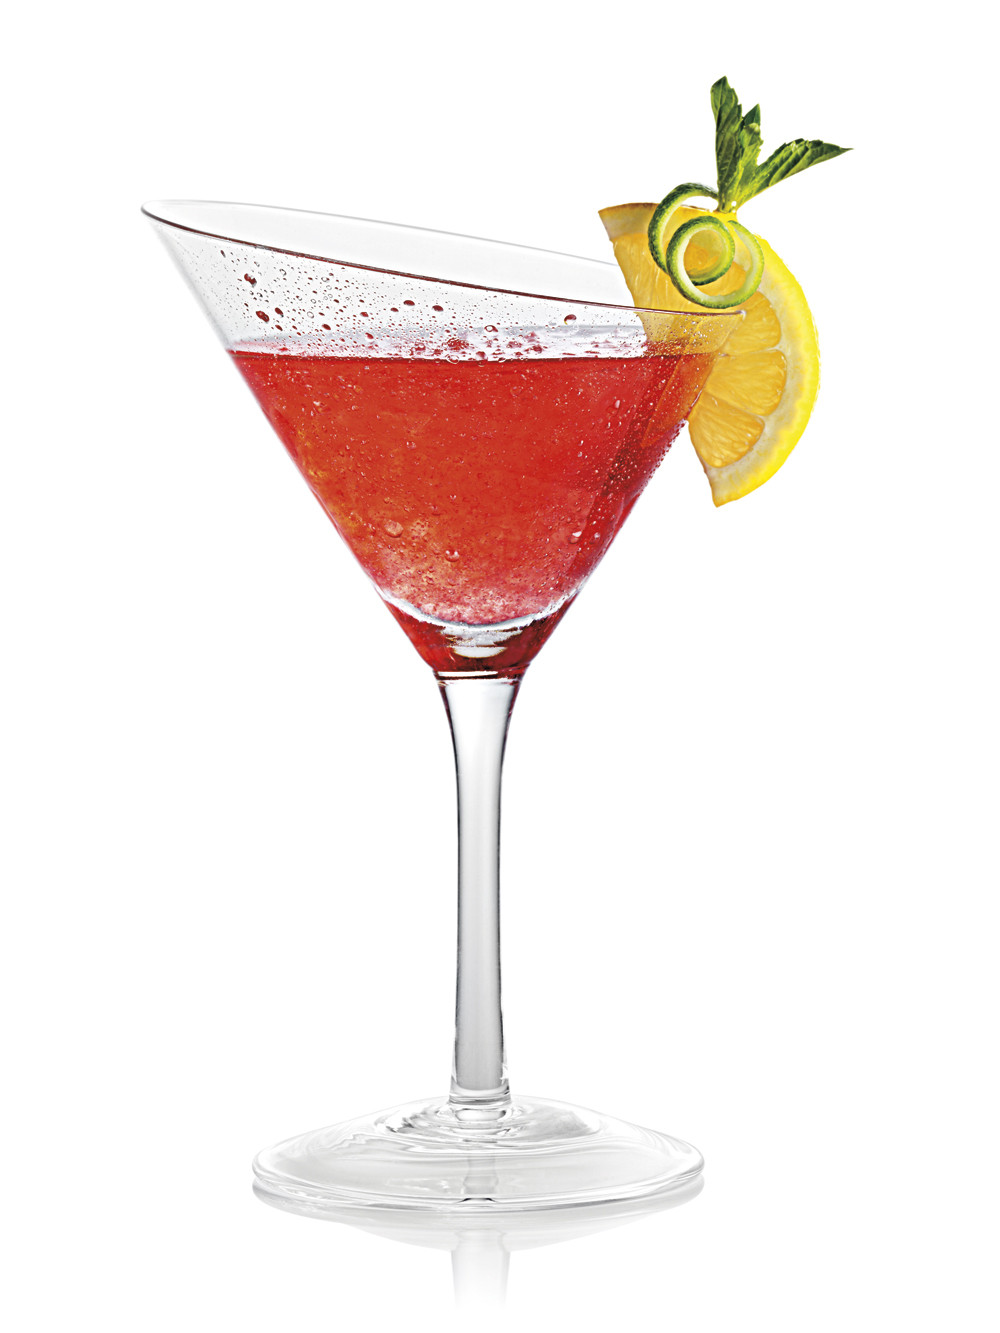 Vodka Drinks Mixers  BevMo and Pinnacle Vodka Low Cal Cocktail Recipes for